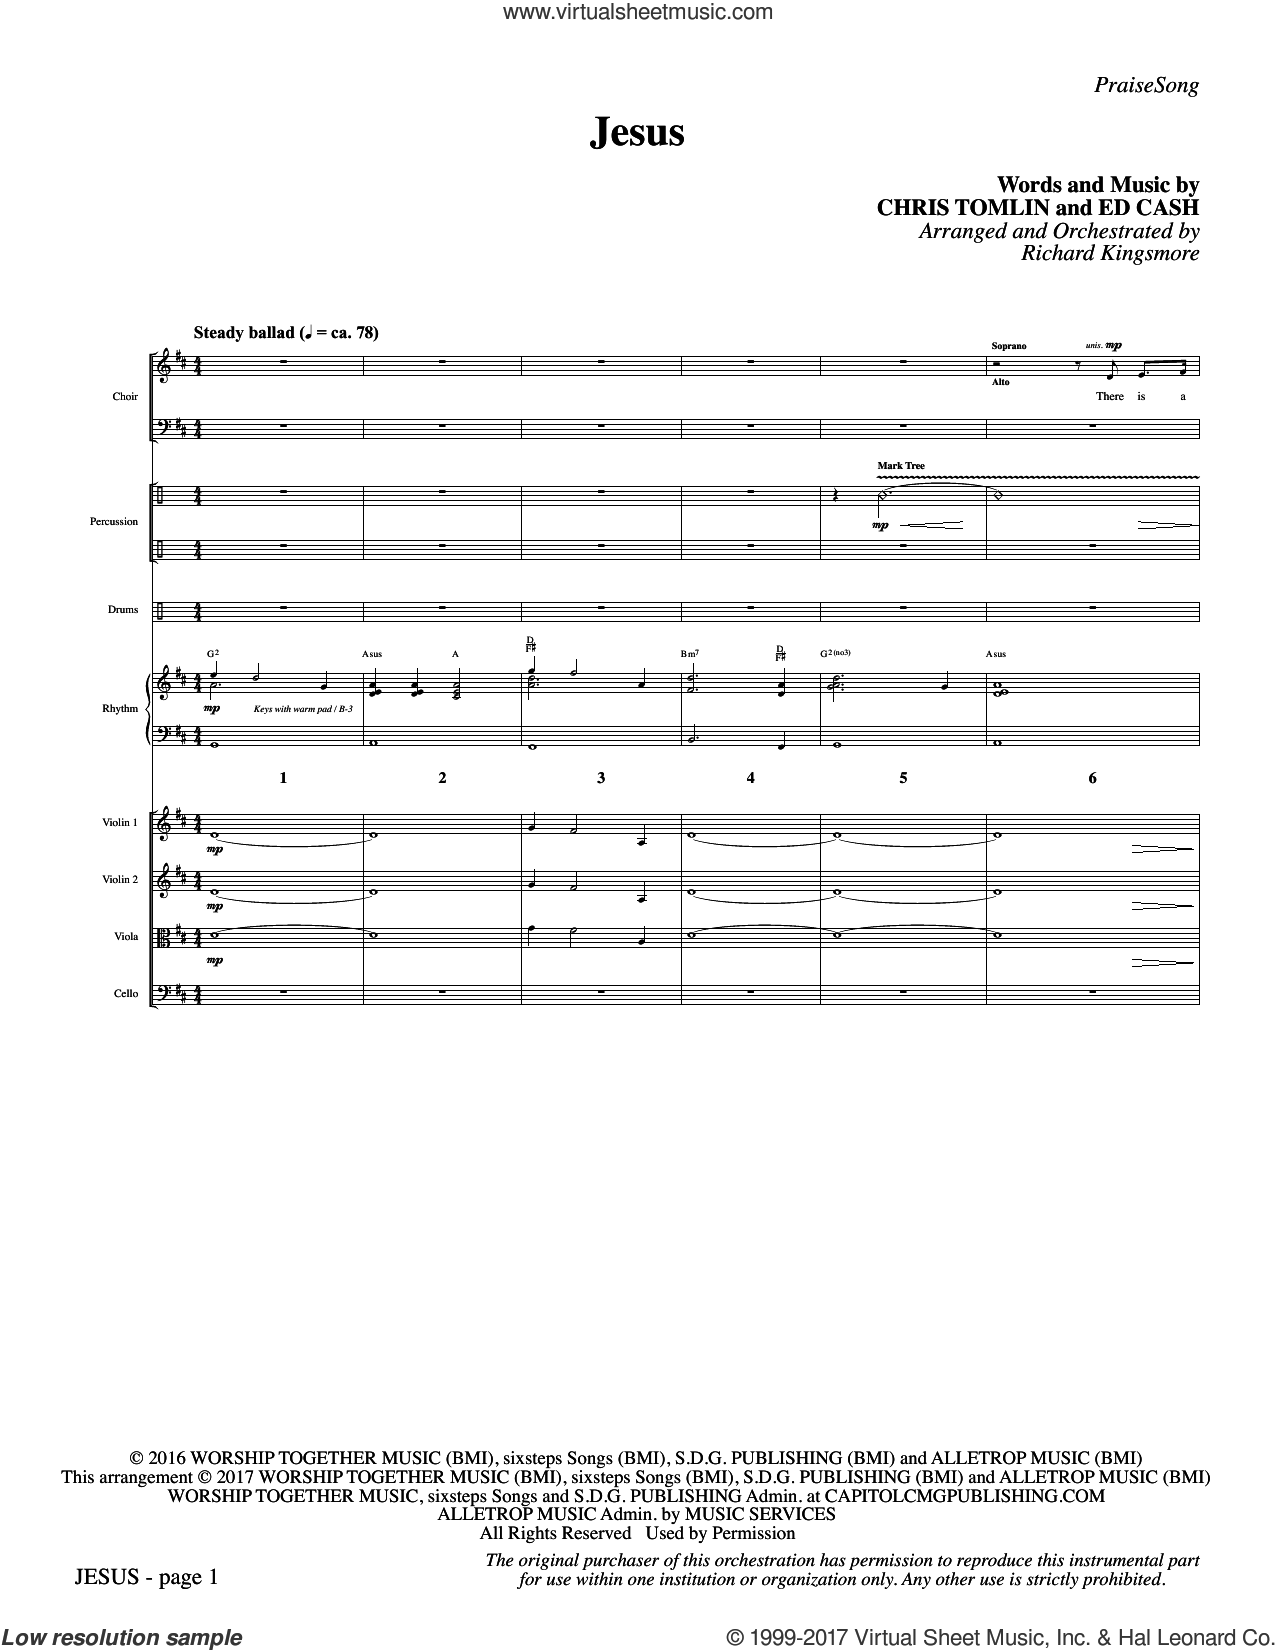 Jesus (arr. Richard Kingsmore) (COMPLETE) sheet music for orchestra/band by Chris Tomlin, Ed Cash and Richard Kingsmore, intermediate skill level